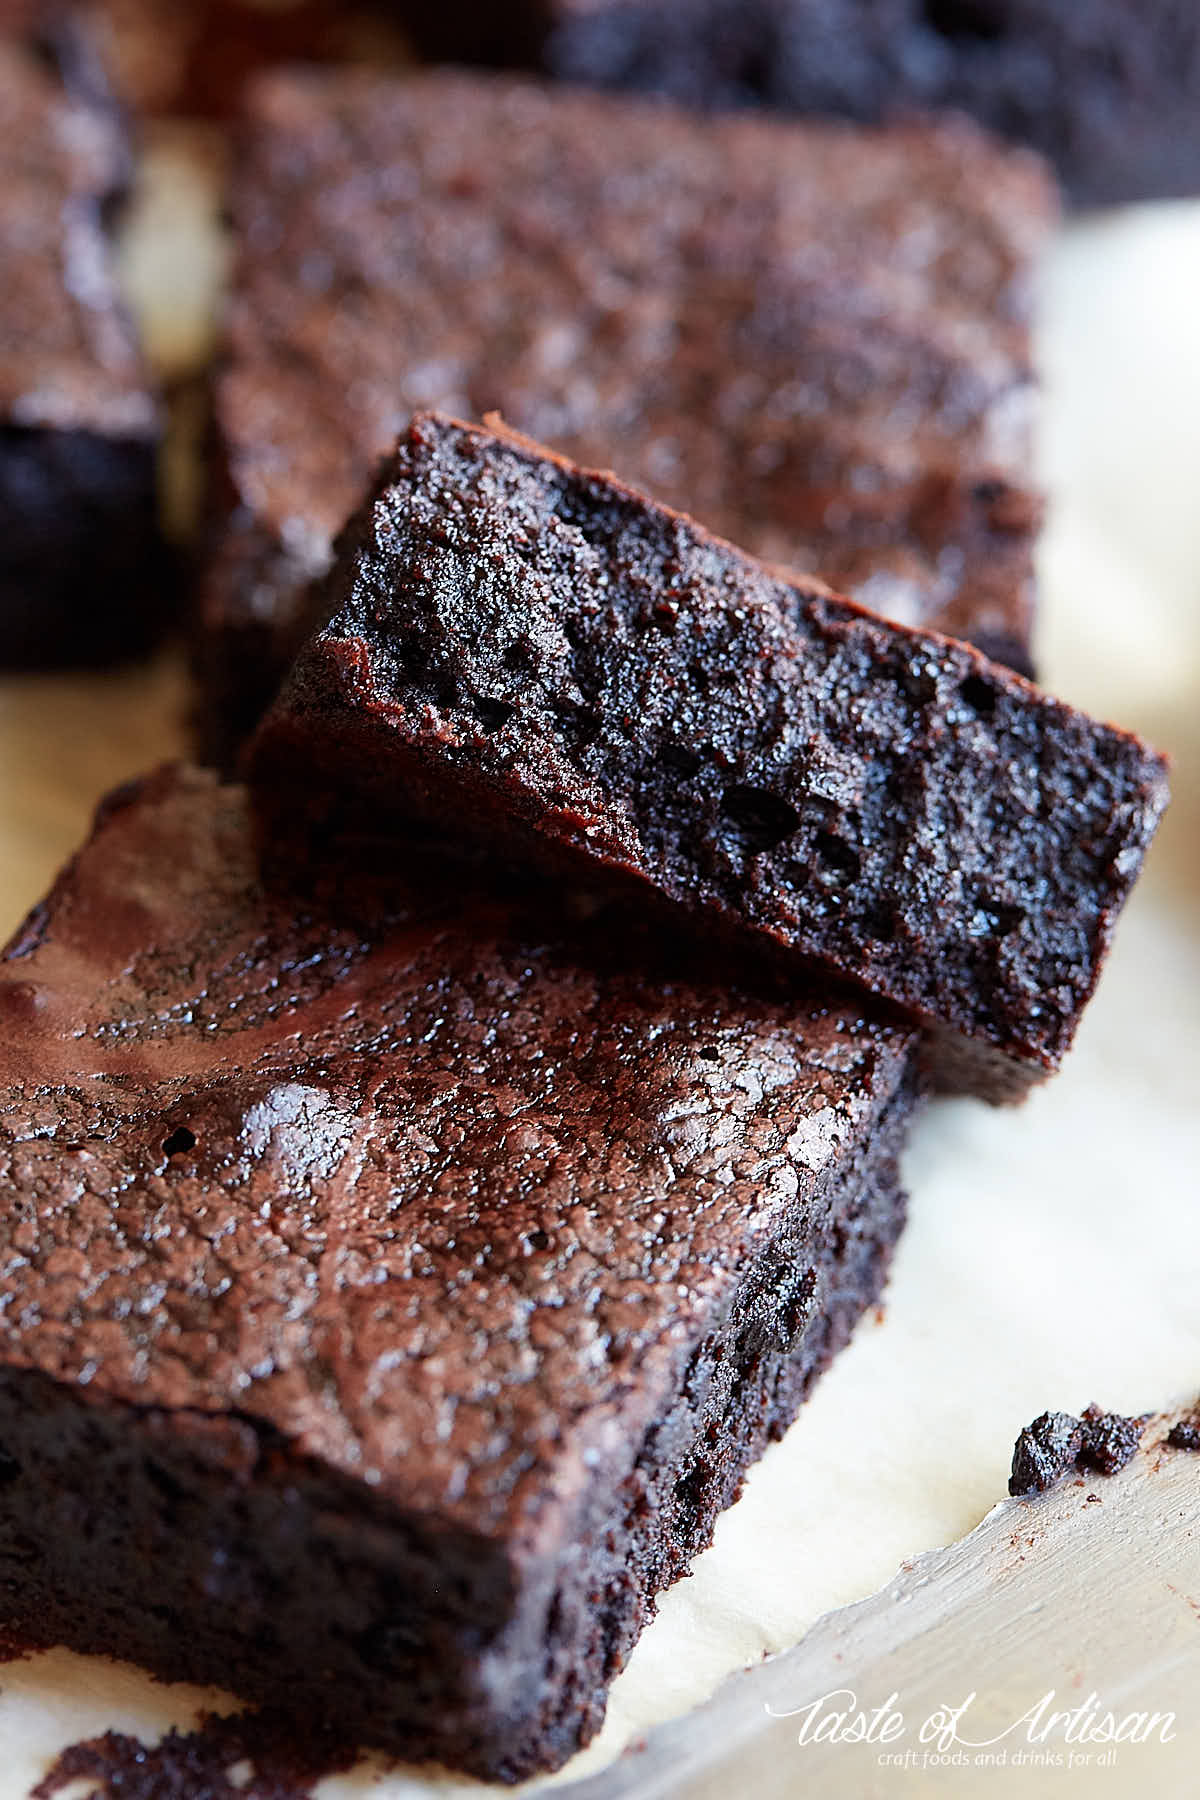 Flourless brownies, cut into pieces, set on a piece of paper.